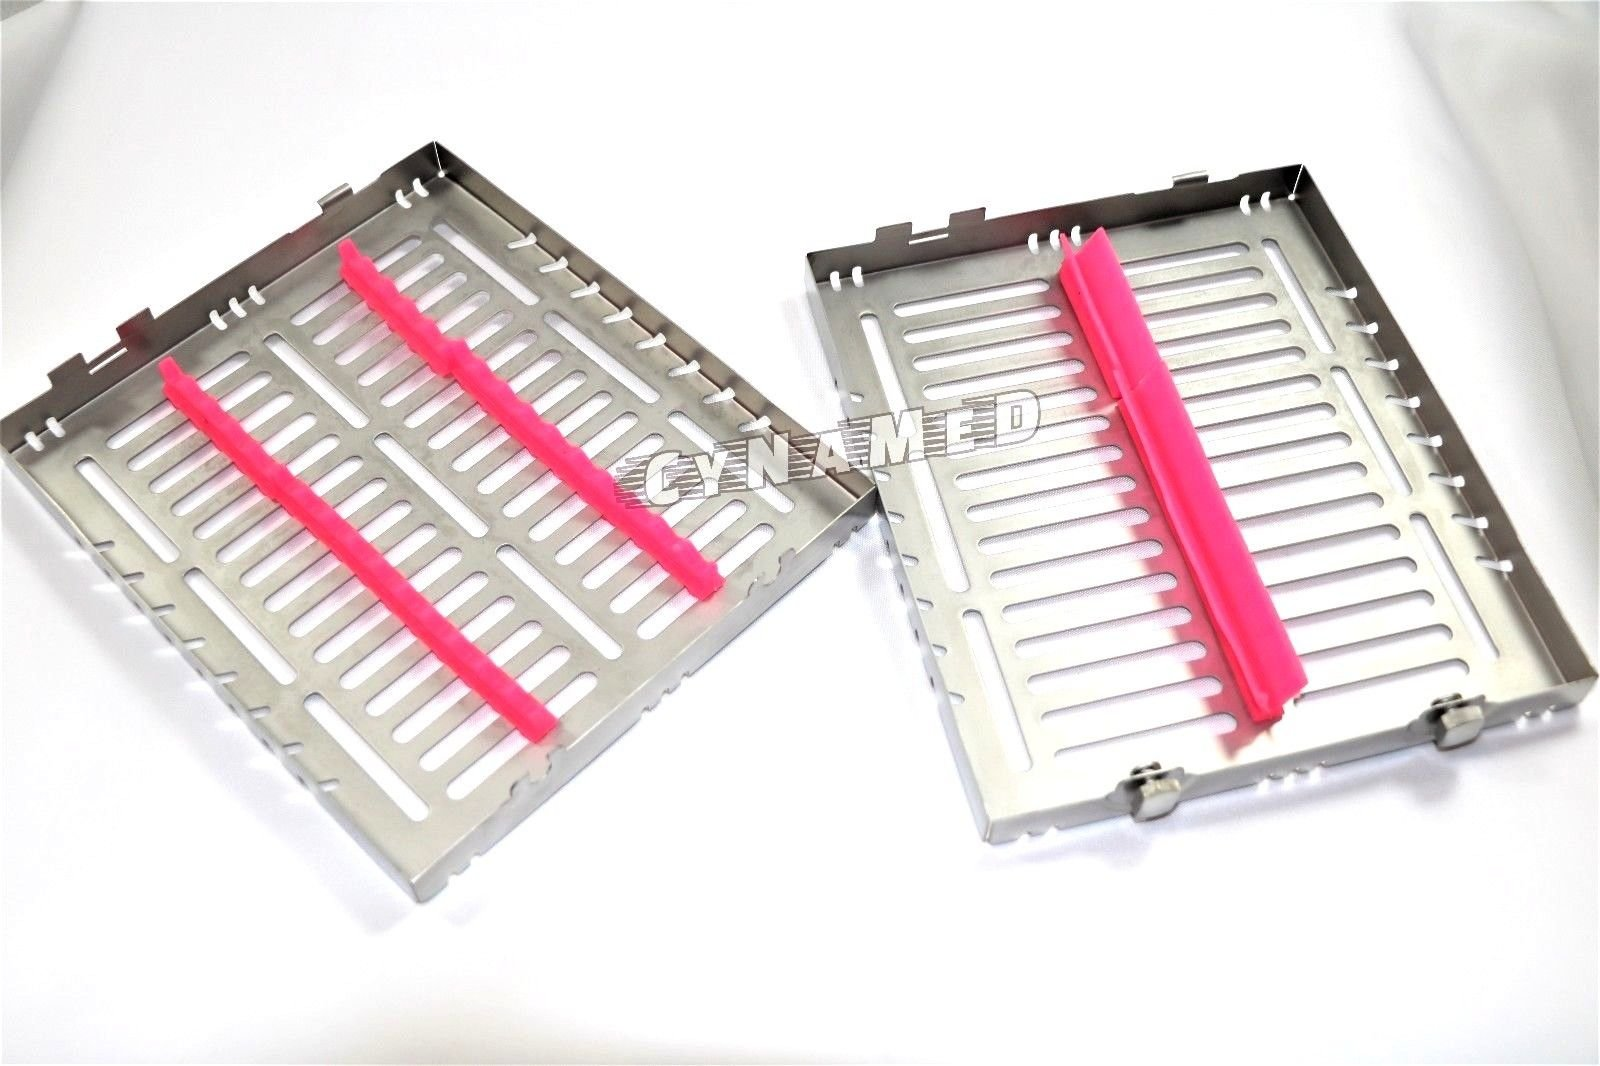 5 German Dental Autoclave Sterilization Cassette Tray for 15 Instruments 8.25X7.25X1.25'' Pink CYNAMED by CYNAMED (Image #6)